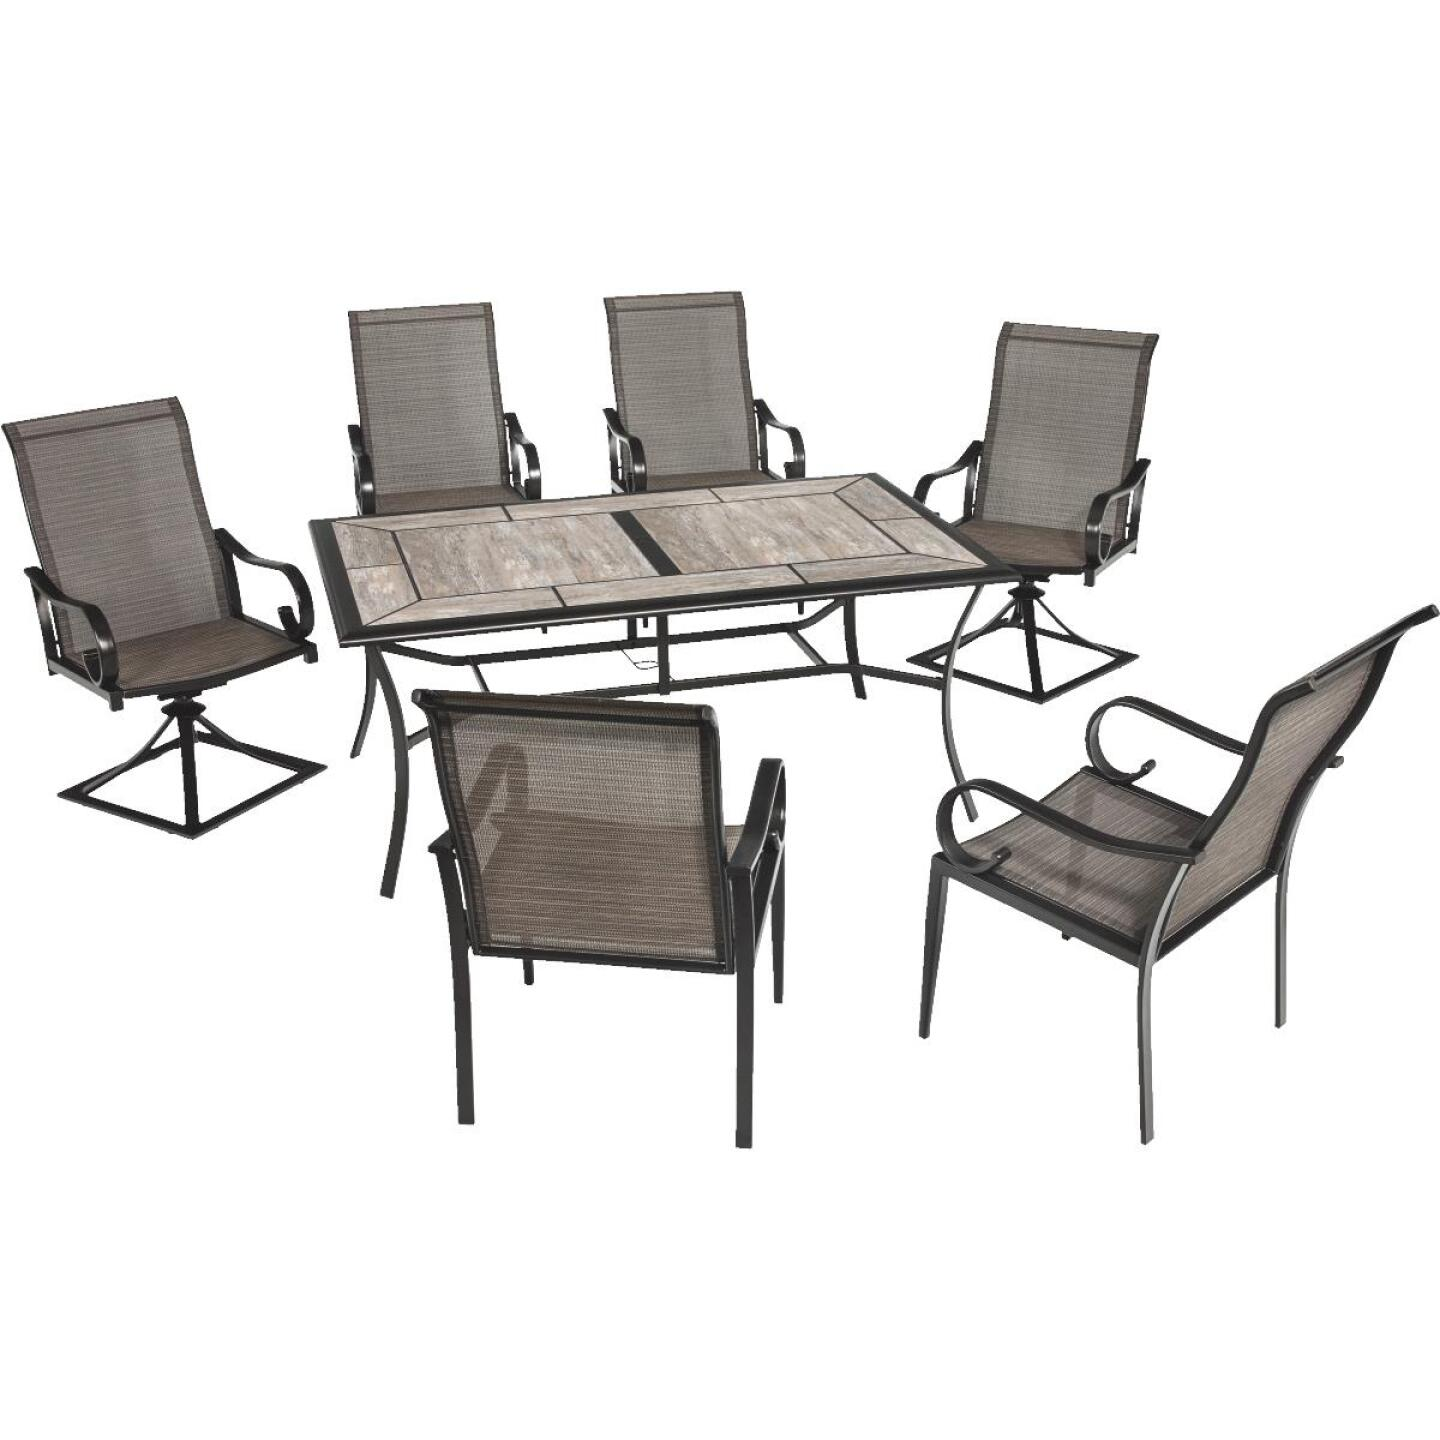 Outdoor Expressions Berkshire 7-Piece Dining Set Image 258